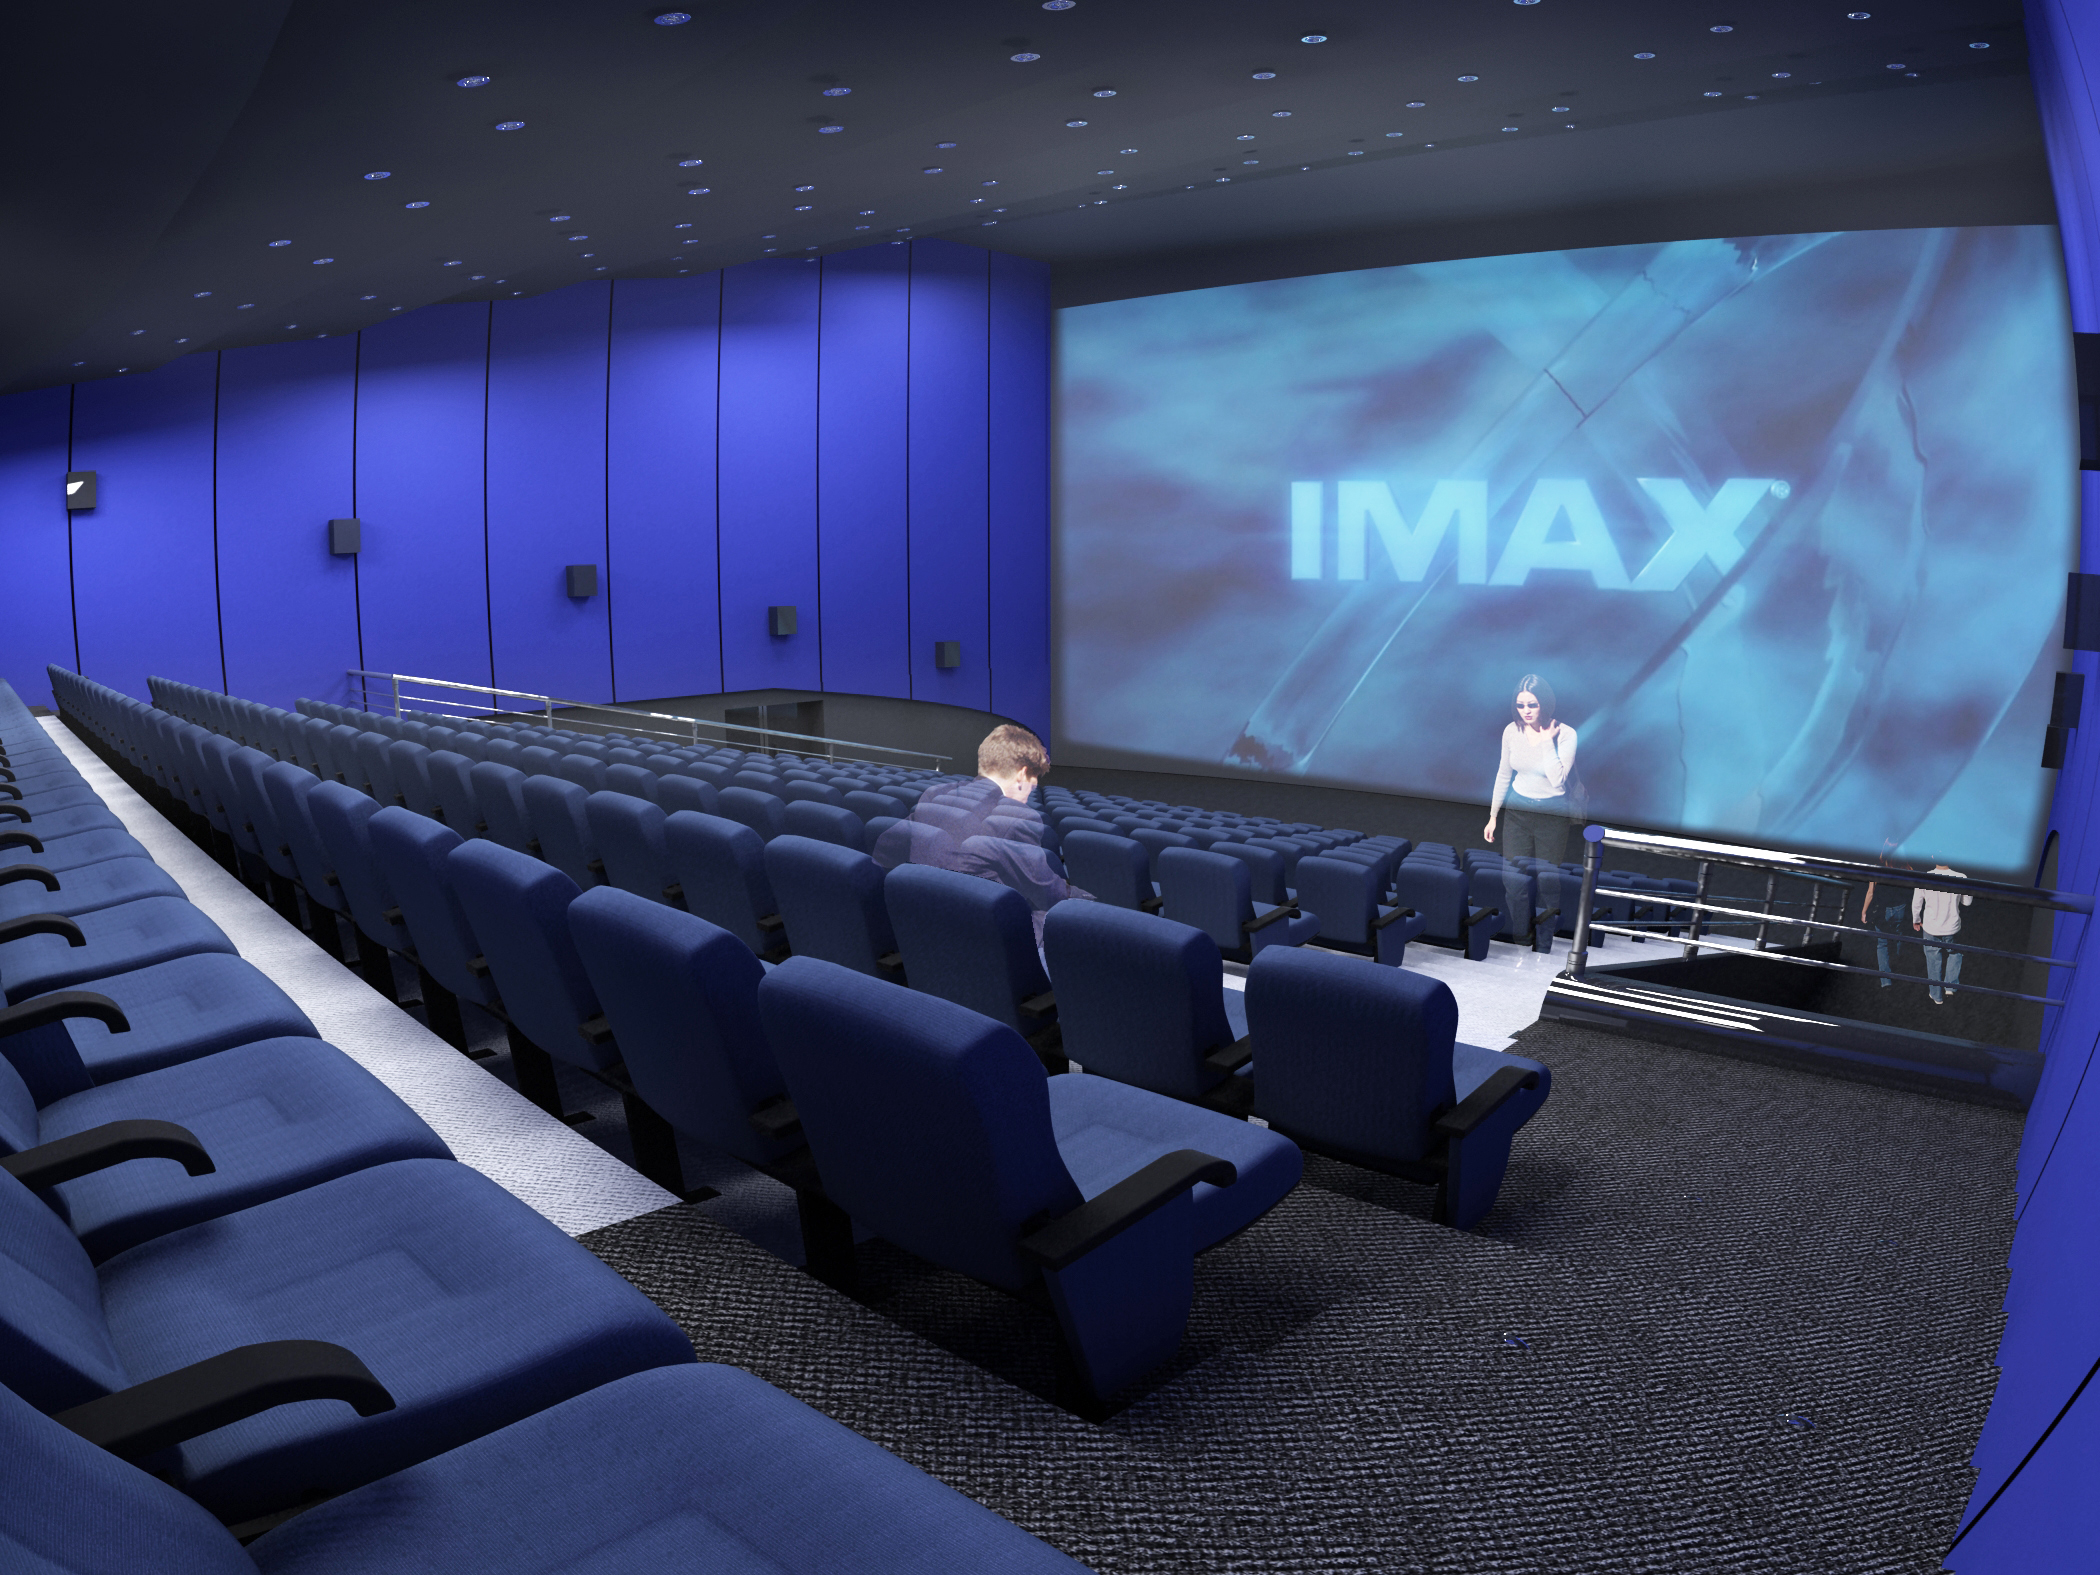 external environment factors of imax Personal health and well-being are greatly influenced by environment, both internal and external internal environmental factors include the genetic traits, familial tendencies, and physical and psychological characteristics inherent in each person.